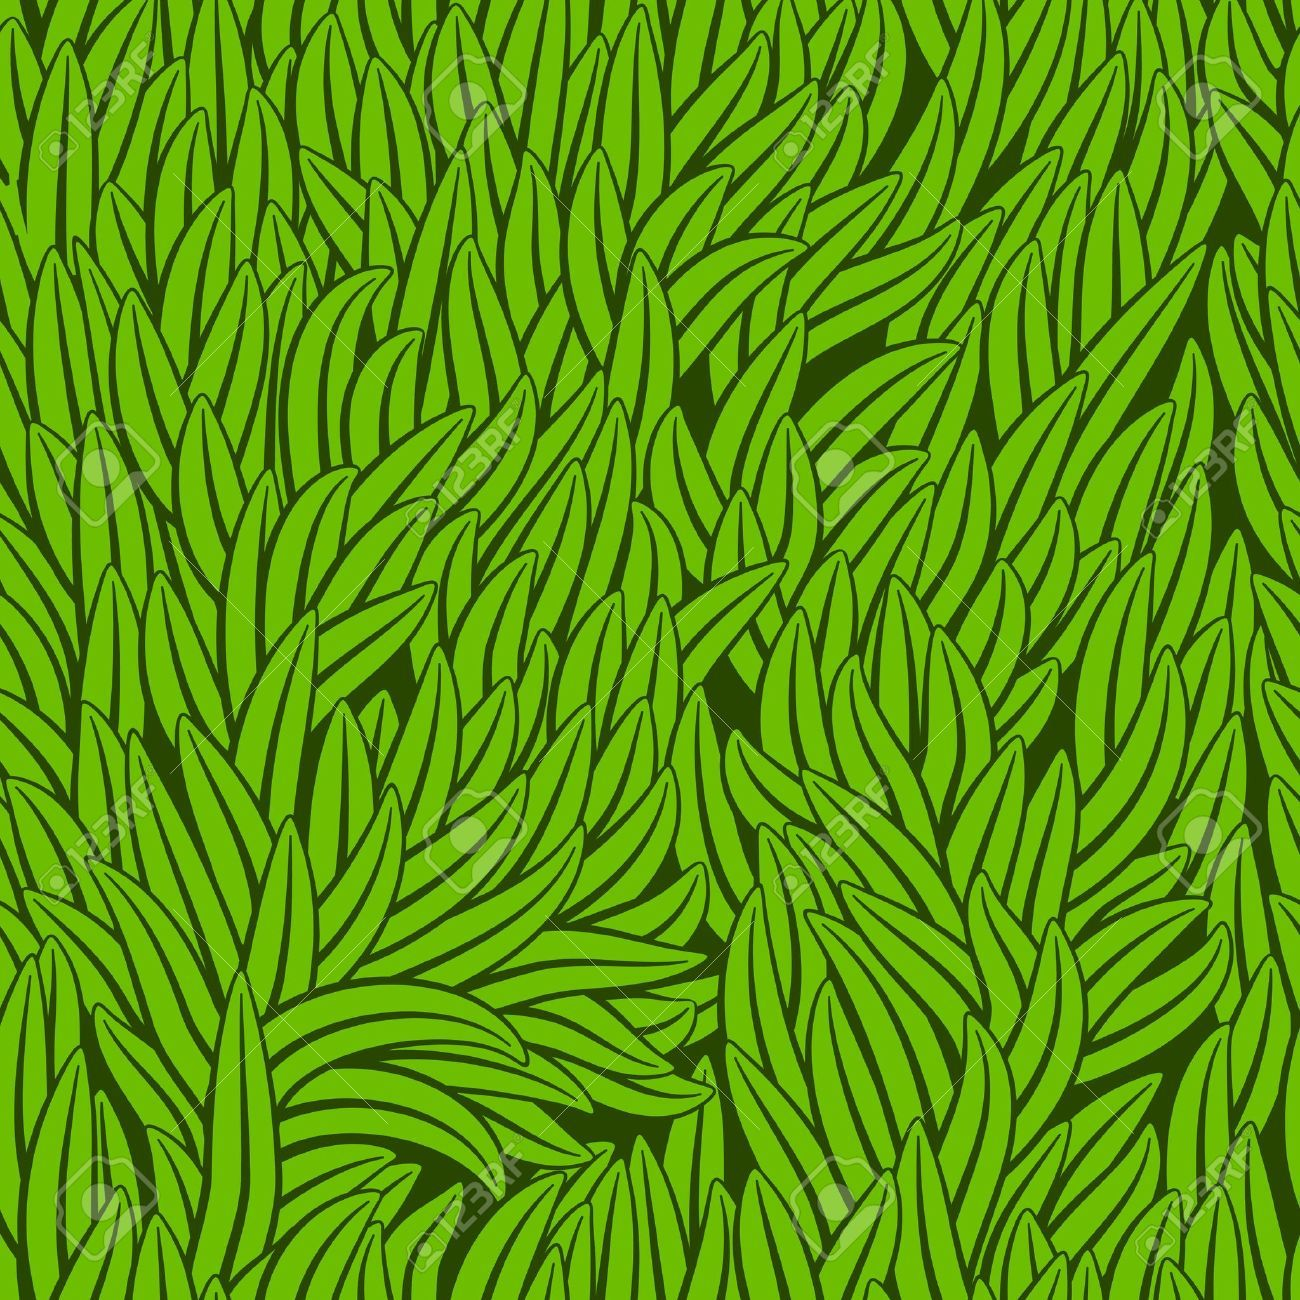 grass pattern illustrator google search grass texture seamless grass pattern grass textures grass texture seamless